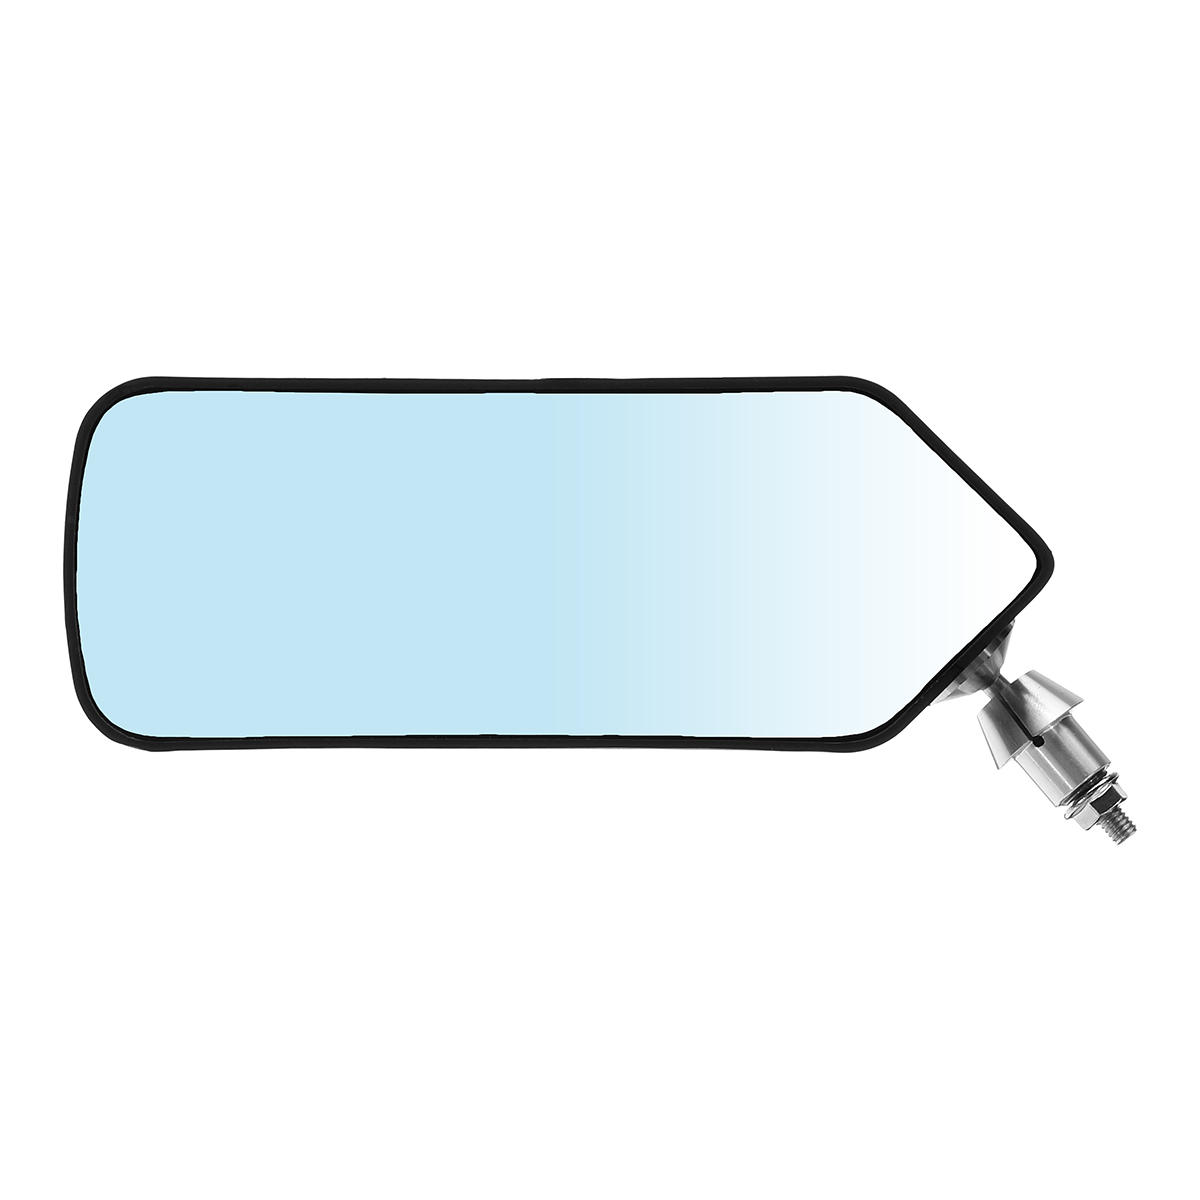 Us 52 12 Universal F1 Style Blue Metal Bracket Side Car Left And Right Mirror Auto Parts From Automobiles Motorcycles On Banggood Com Mirror Sidecar Mirrors For Sale